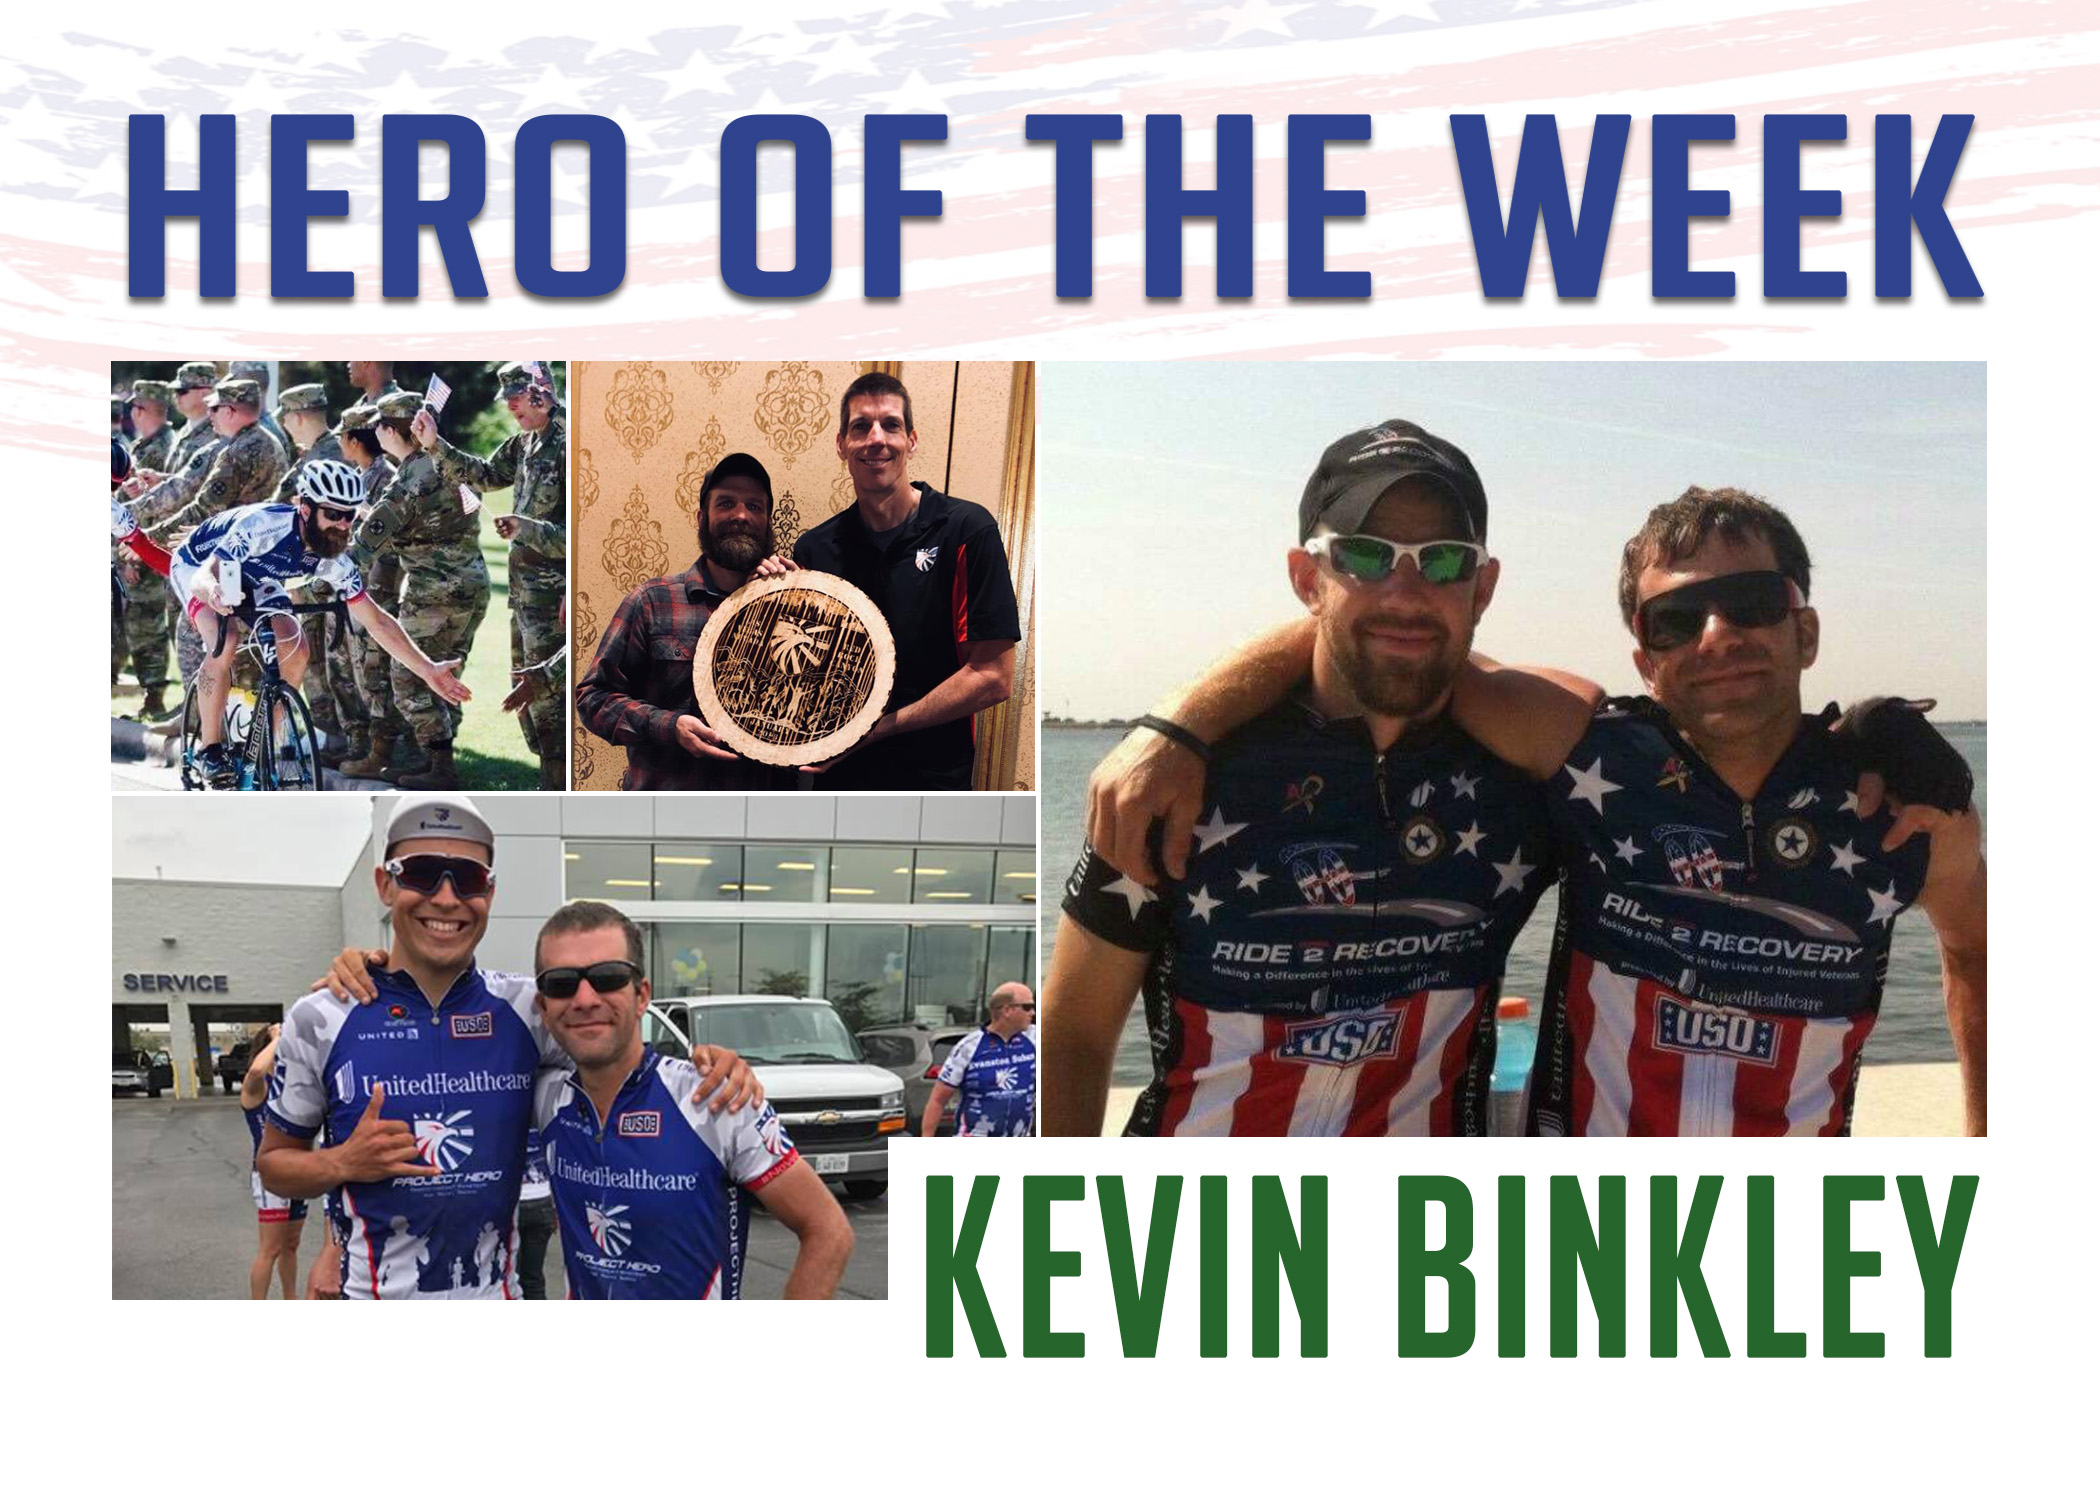 Hero of the Week: Kevin Binkley